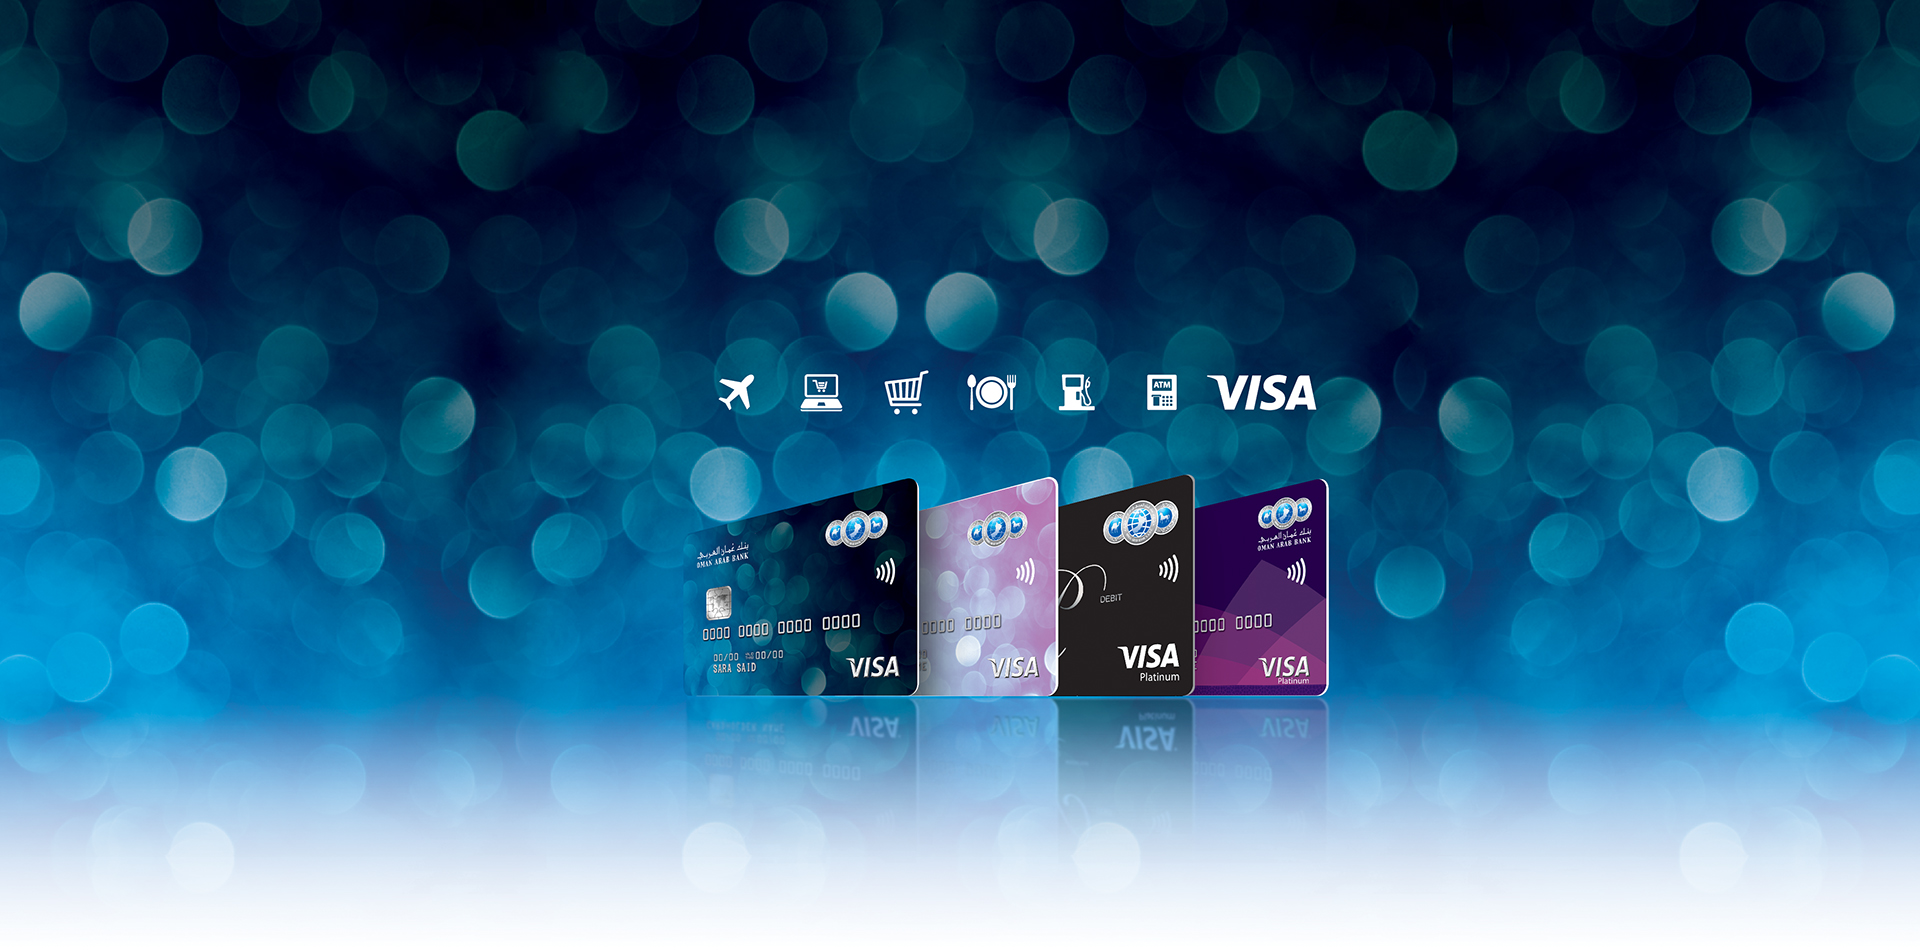 AllScreen_OAB Debit Cards Launch Ad Arb Alawatan life just R4